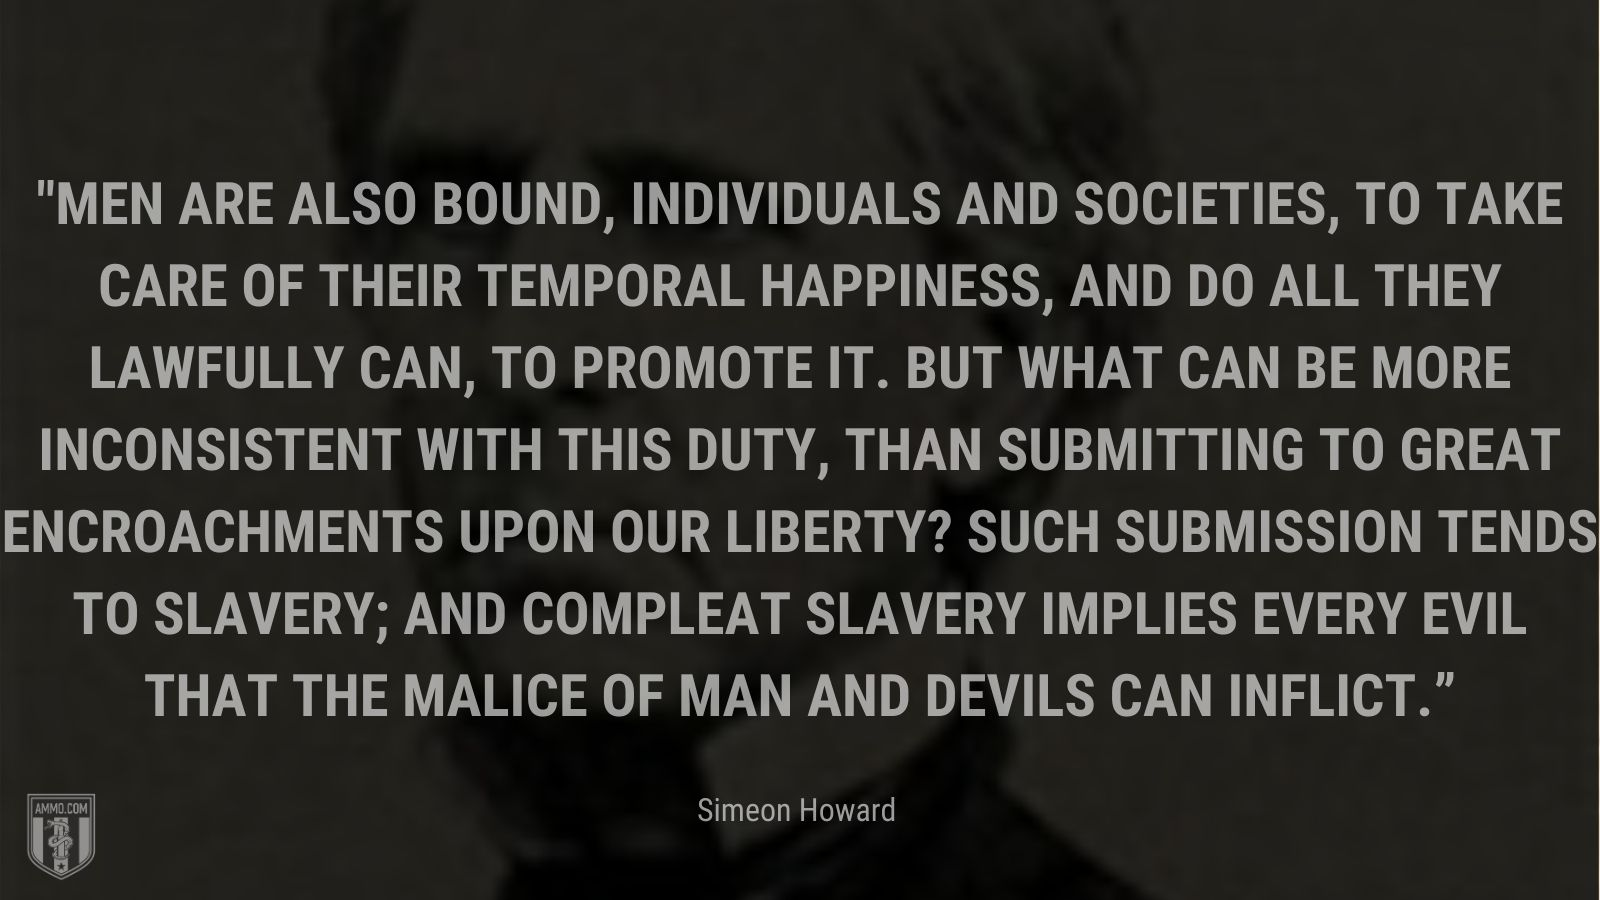 """""""Men are also bound, individuals and societies, to take care of their temporal happiness, and do all they lawfully can, to promote it. But what can be more inconsistent with this duty, than submitting to great encroachments upon our liberty? Such submission tends to slavery; and compleat slavery implies every evil that the malice of man and devils can inflict."""" - Simeon Howard"""